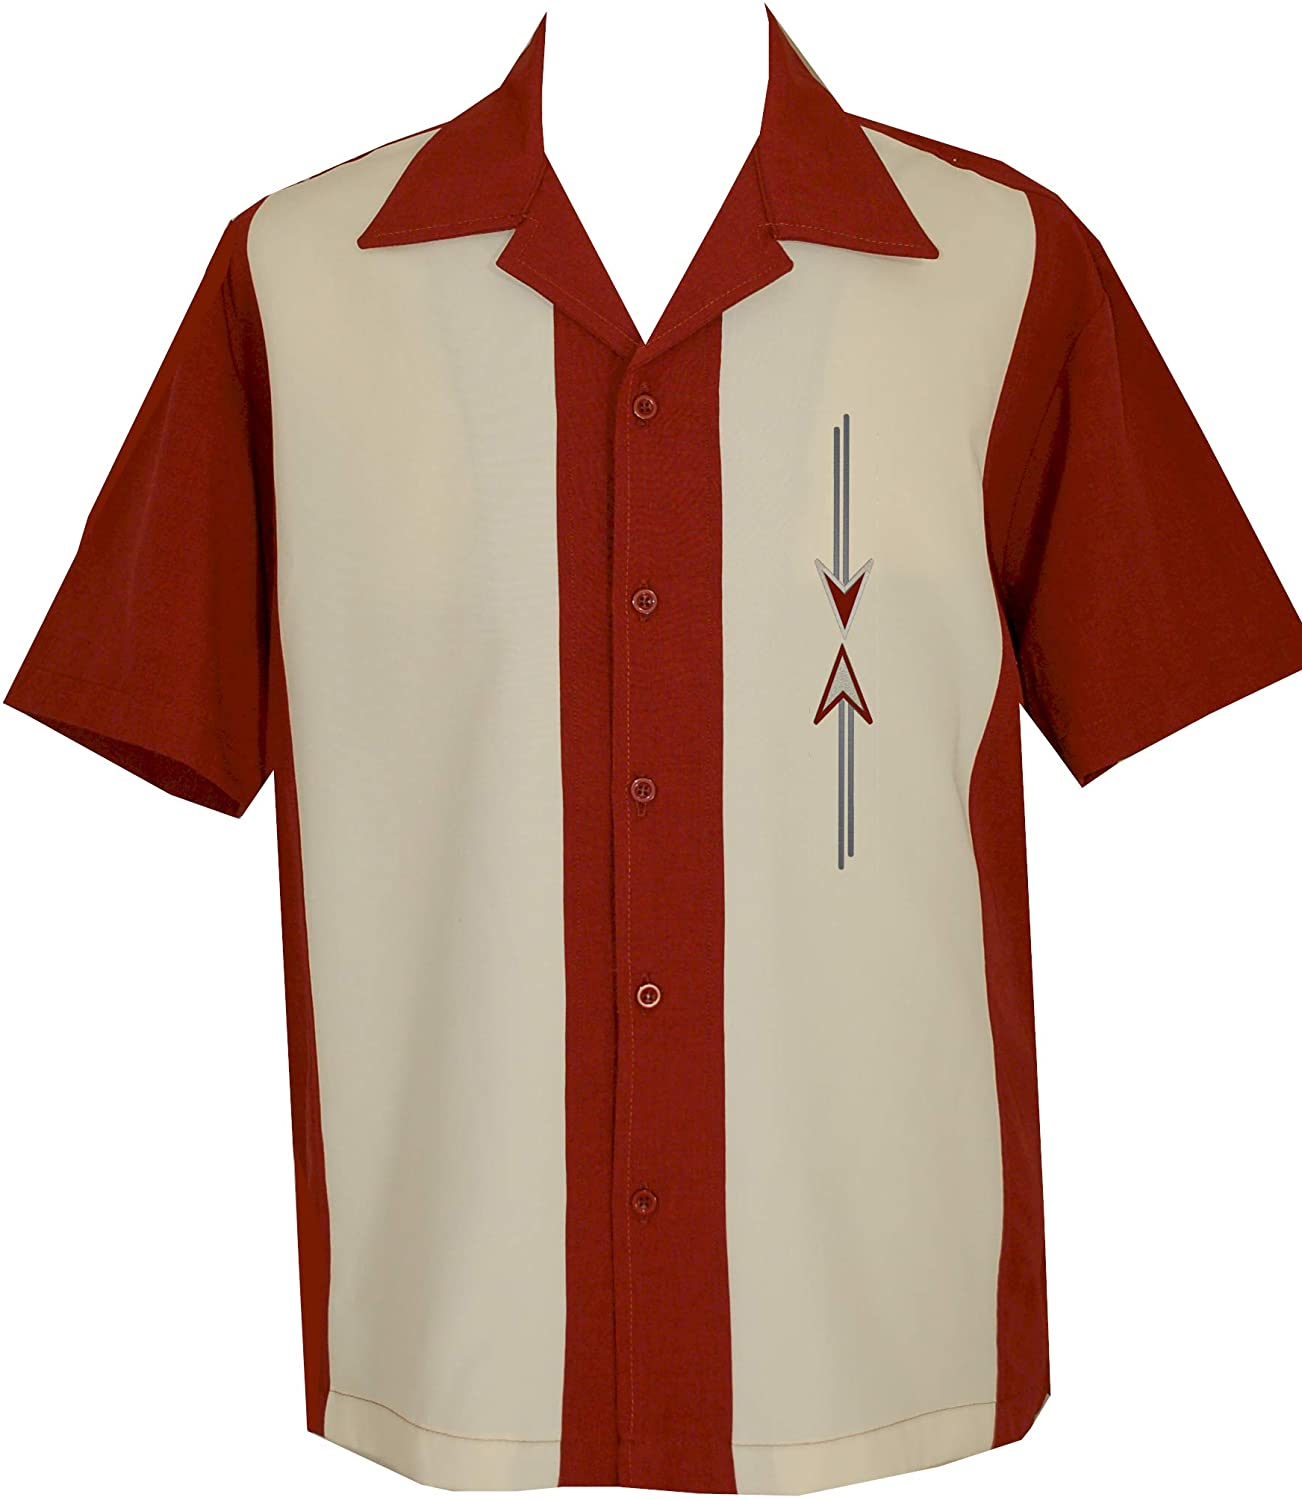 1950s Men's Shirt Styles – Dress Shirts to Casual Pullovers Lucky Paradise Mens Camp Shirt Vintage Cuban Style Bowling Shirt ~ Schrader $64.95 AT vintagedancer.com